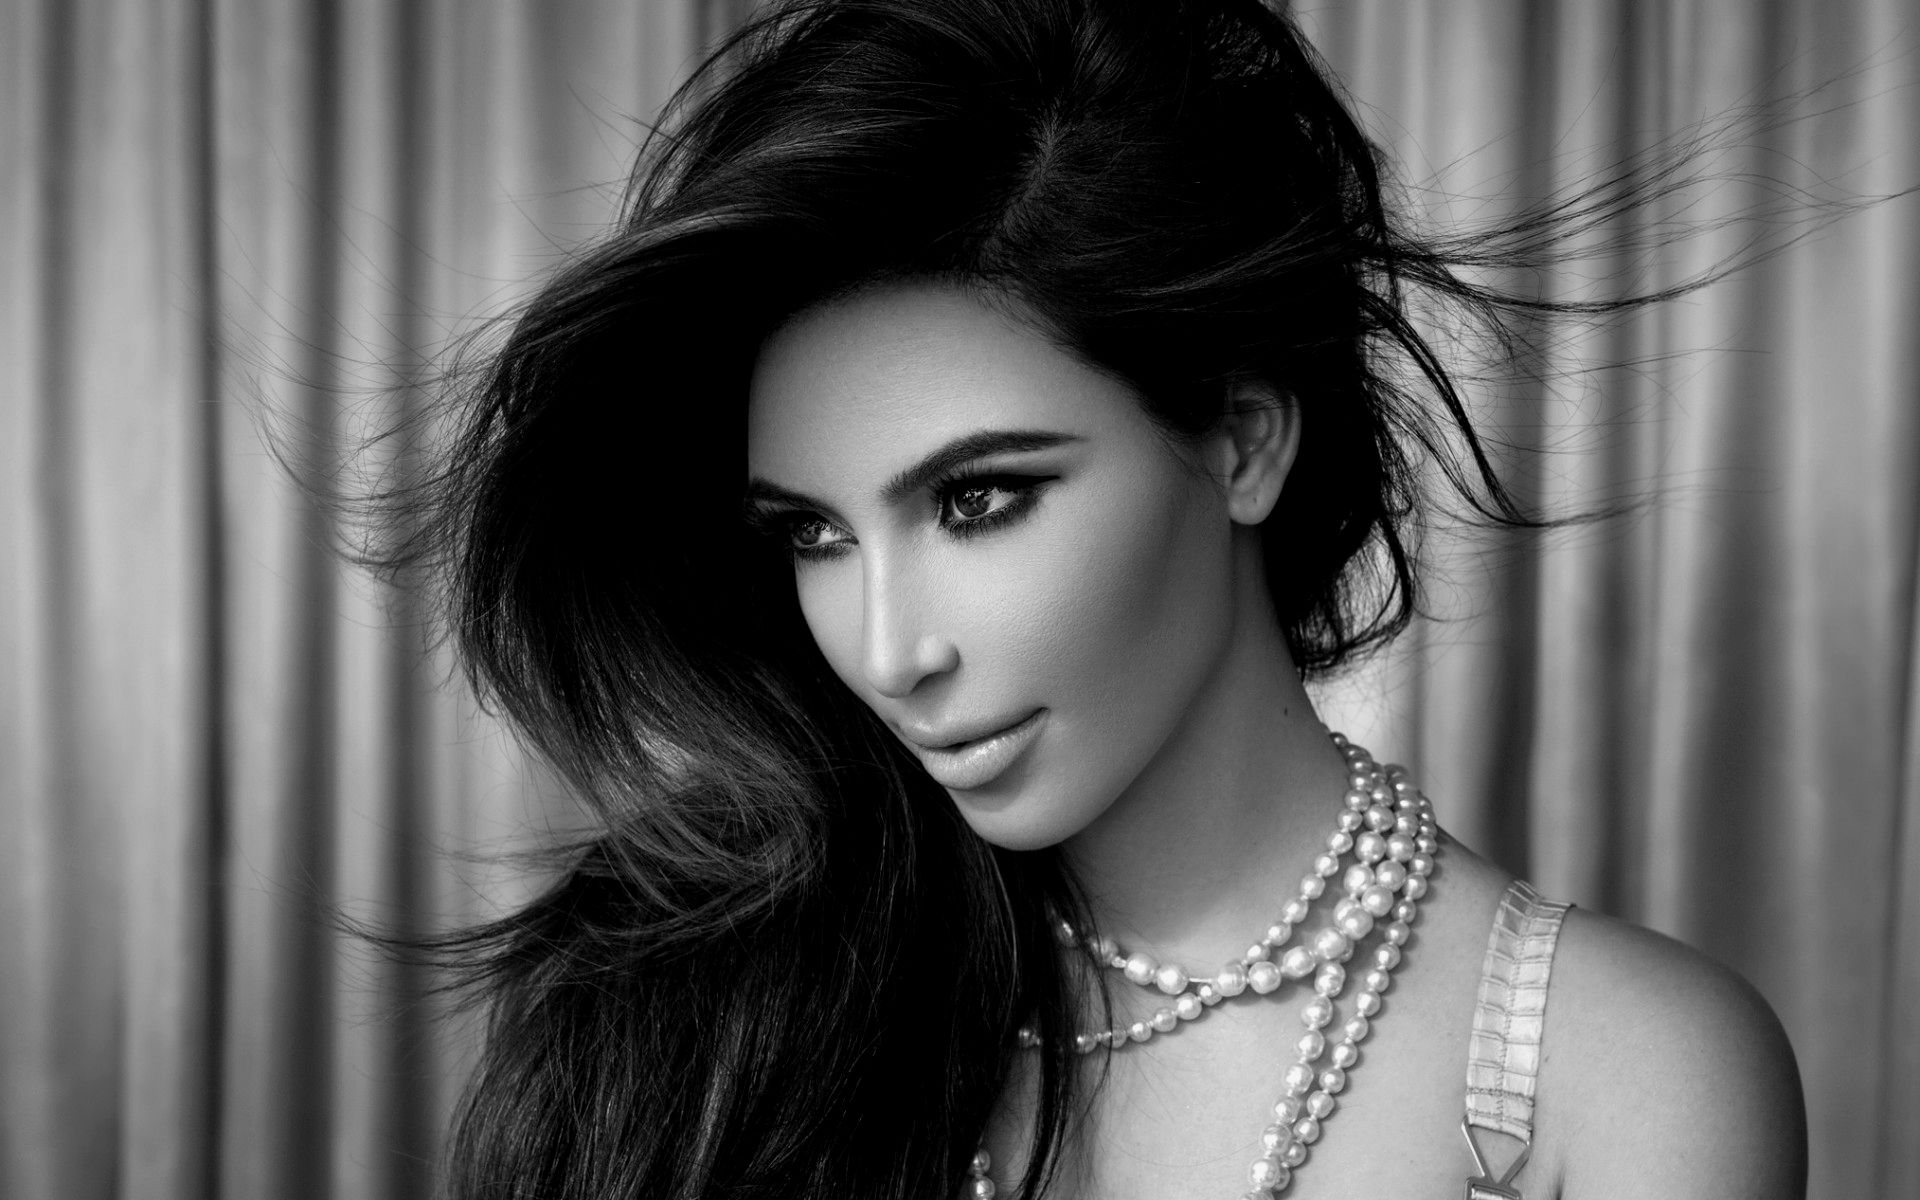 monochrome kim kardashian wallpaper 63367